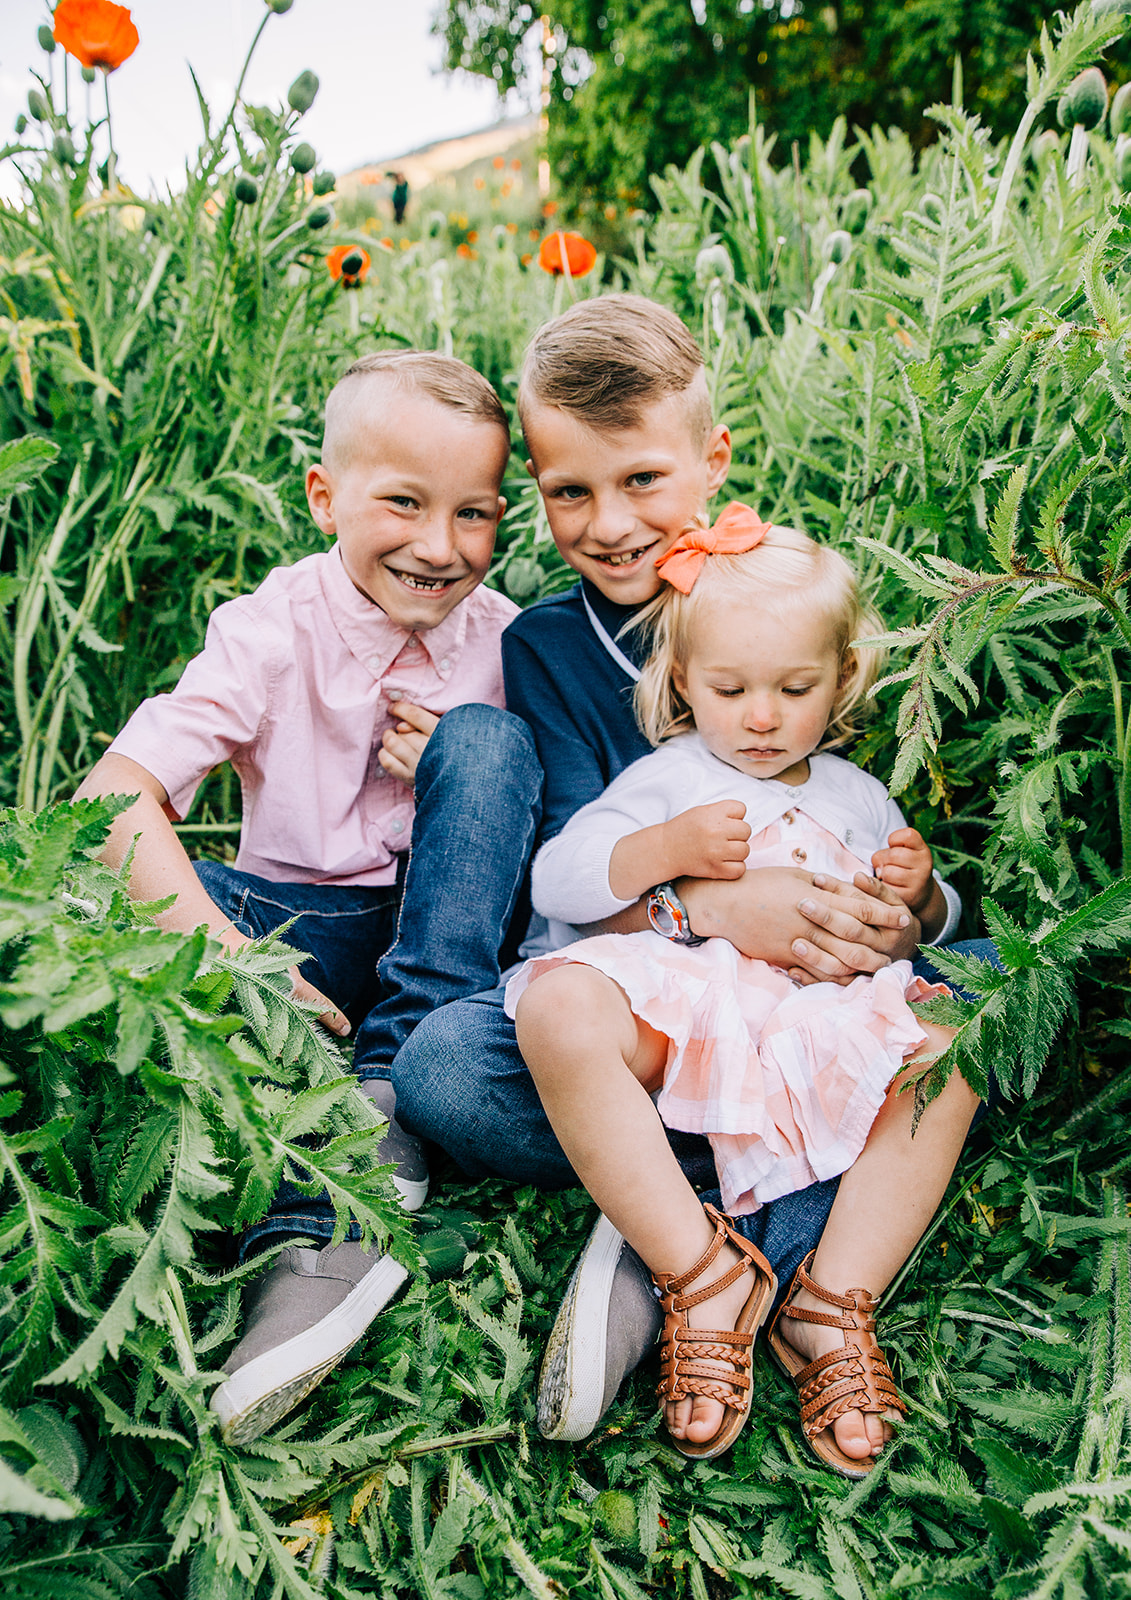 Adorable smiling kids during family pictures in Cache Valley, Utah by professional family photographer Bella Alder Photography. Looking for someone to capture your family pictures this year? Check out Bella Alder! #bellaalderphoto #familyphotog #familyphotography #familypictures #familyphotos #outfitinspo #familyoutfits #poppyfields #northernutahfamilyphotographer #utahfamilyphotographer #cachevalleyfamilyphotographer